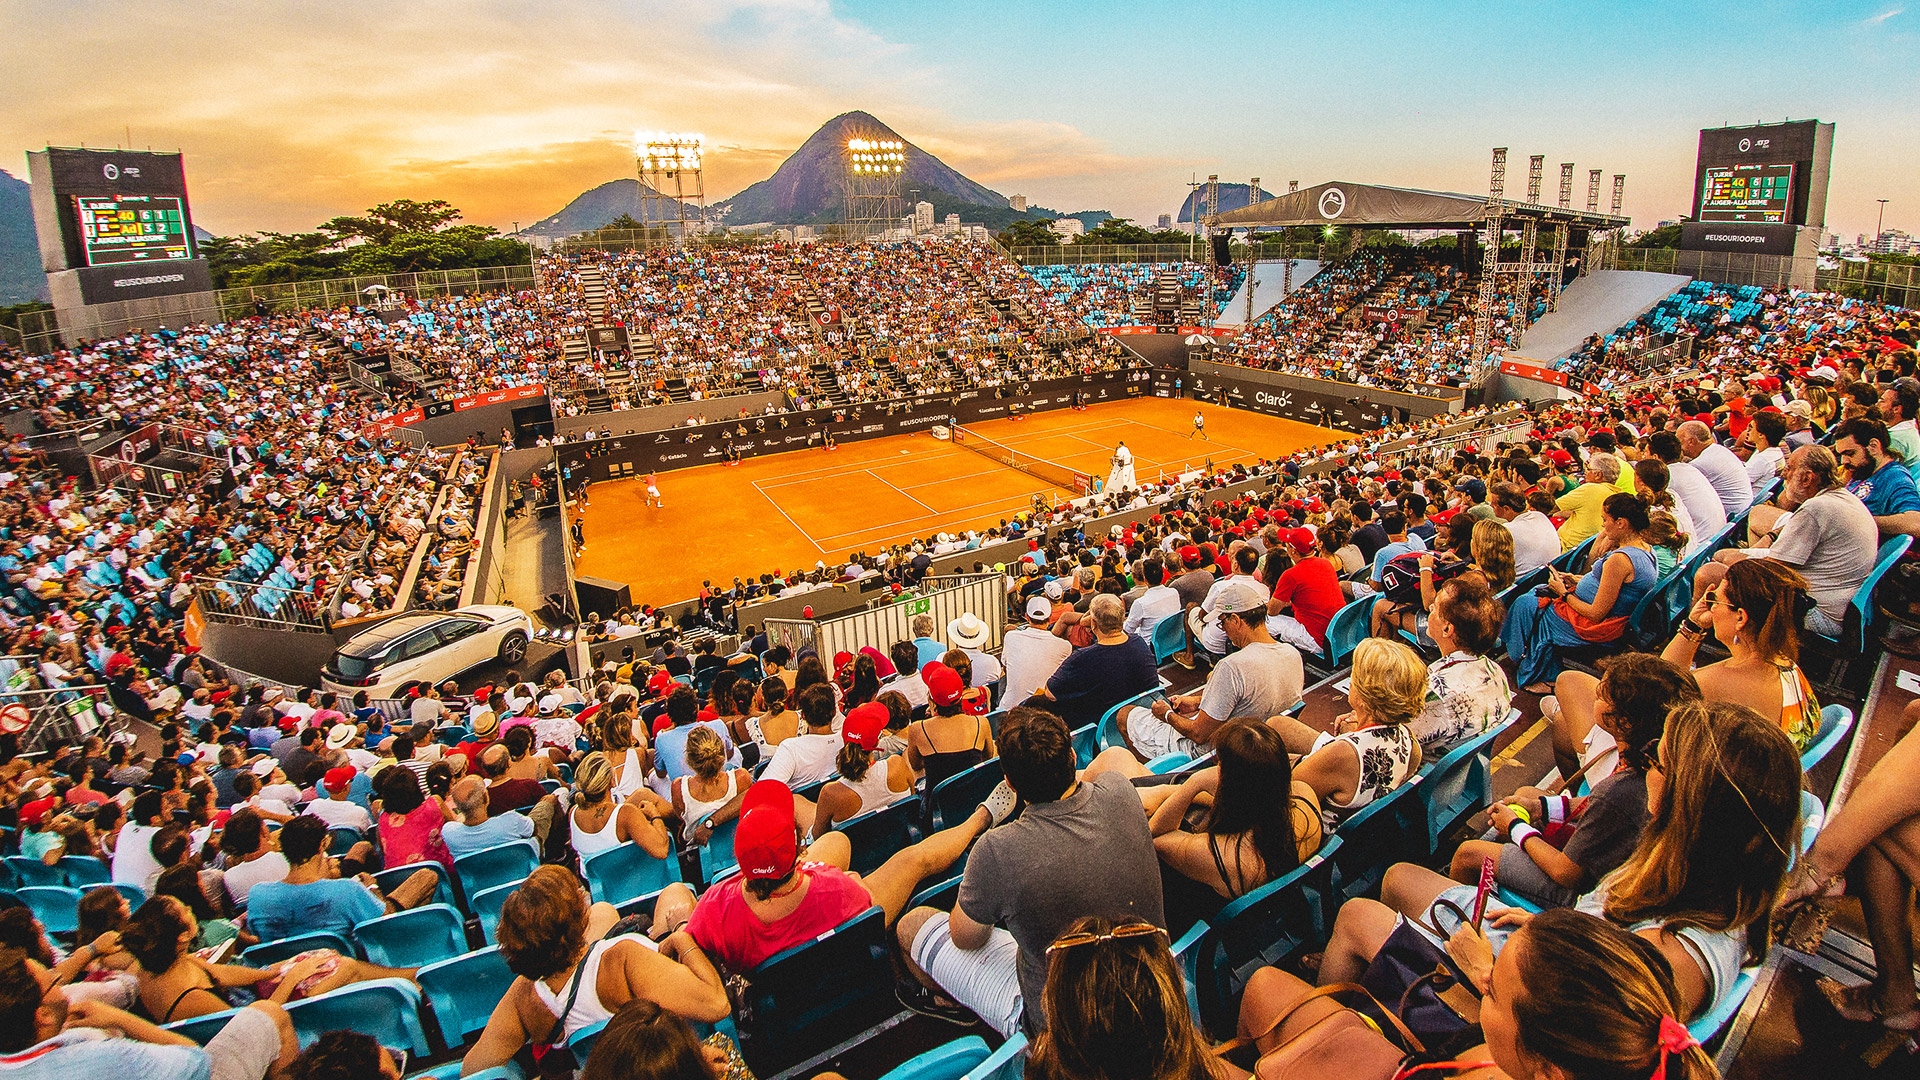 2020 Rio Open Presented by Claro - 19 February Main Coverage and Highlights